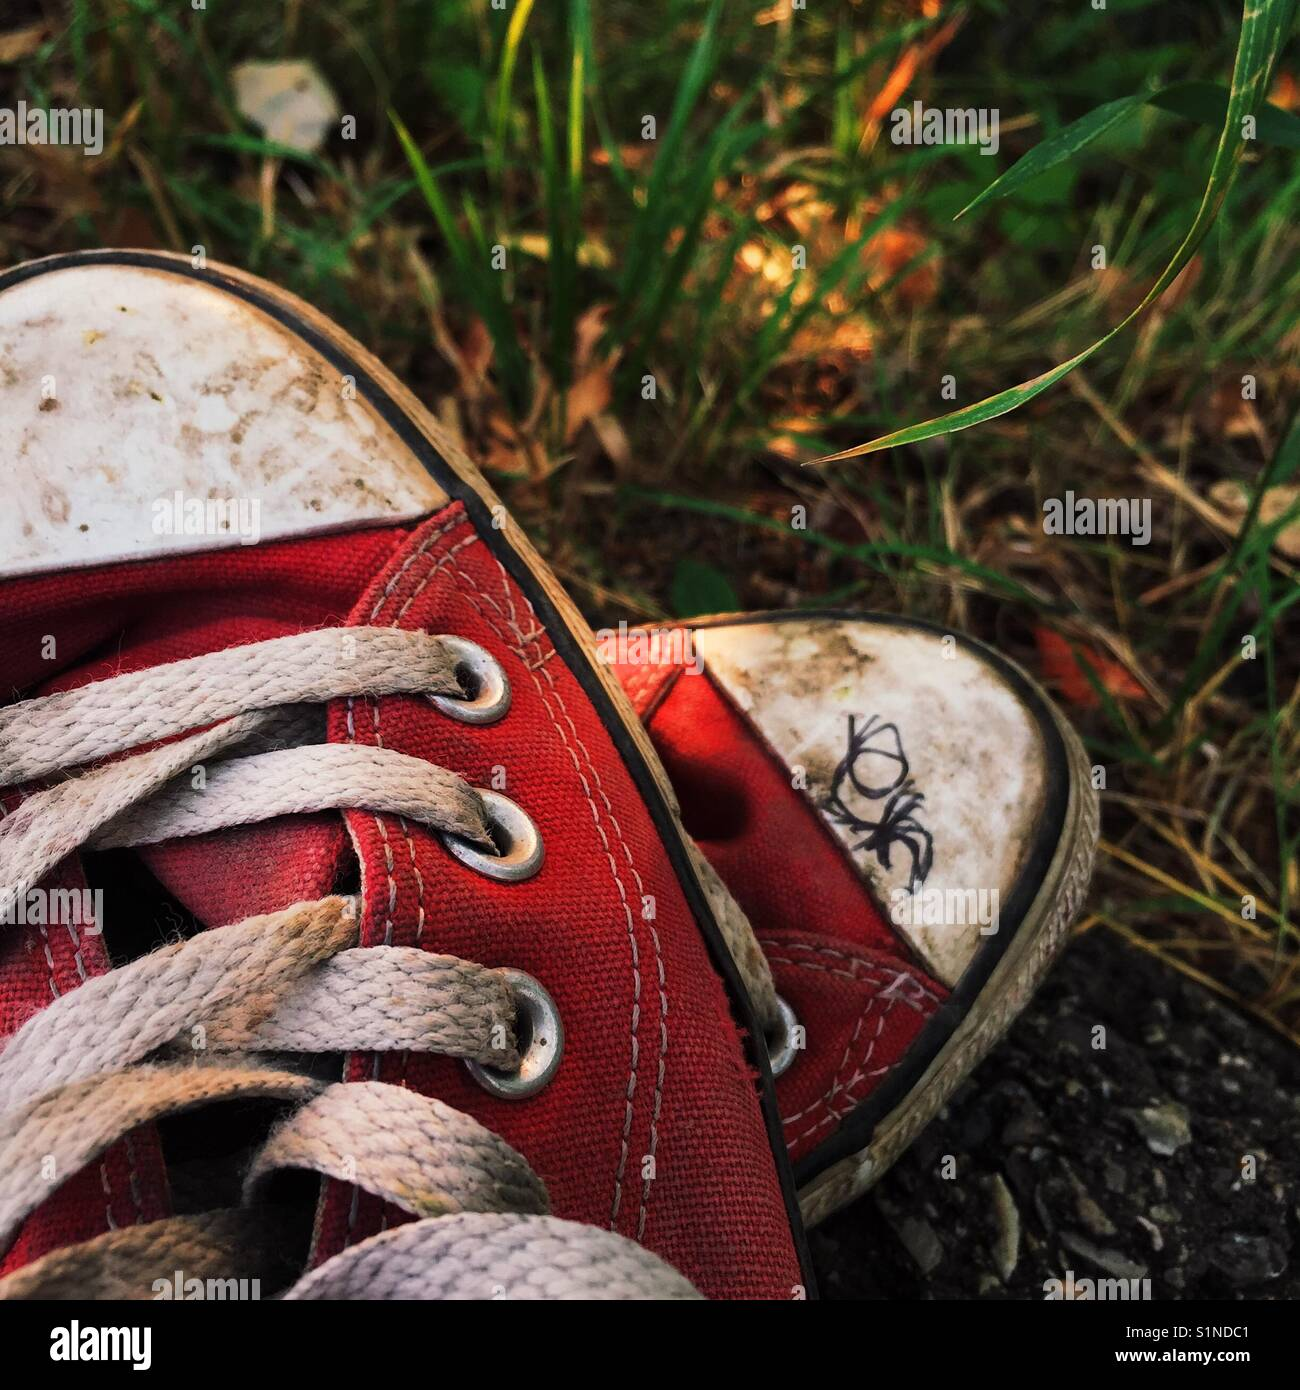 c8bd1c158e3843 Close up detail of an old discarded pair of red canvas shoes on grass -  Stock